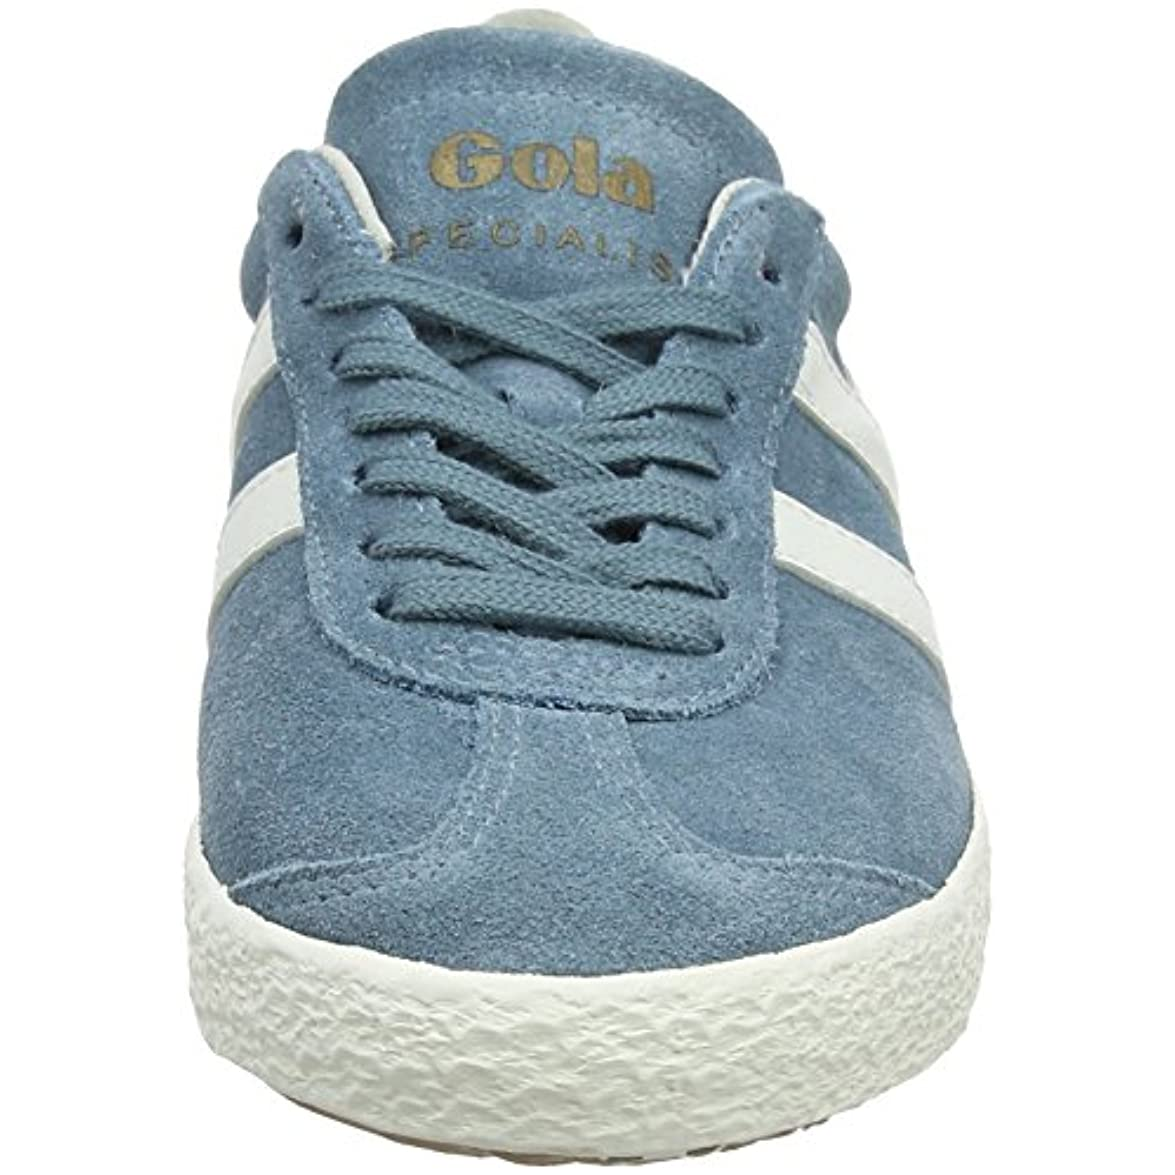 Gola Specialist Indian Teal off White Sneaker Donna